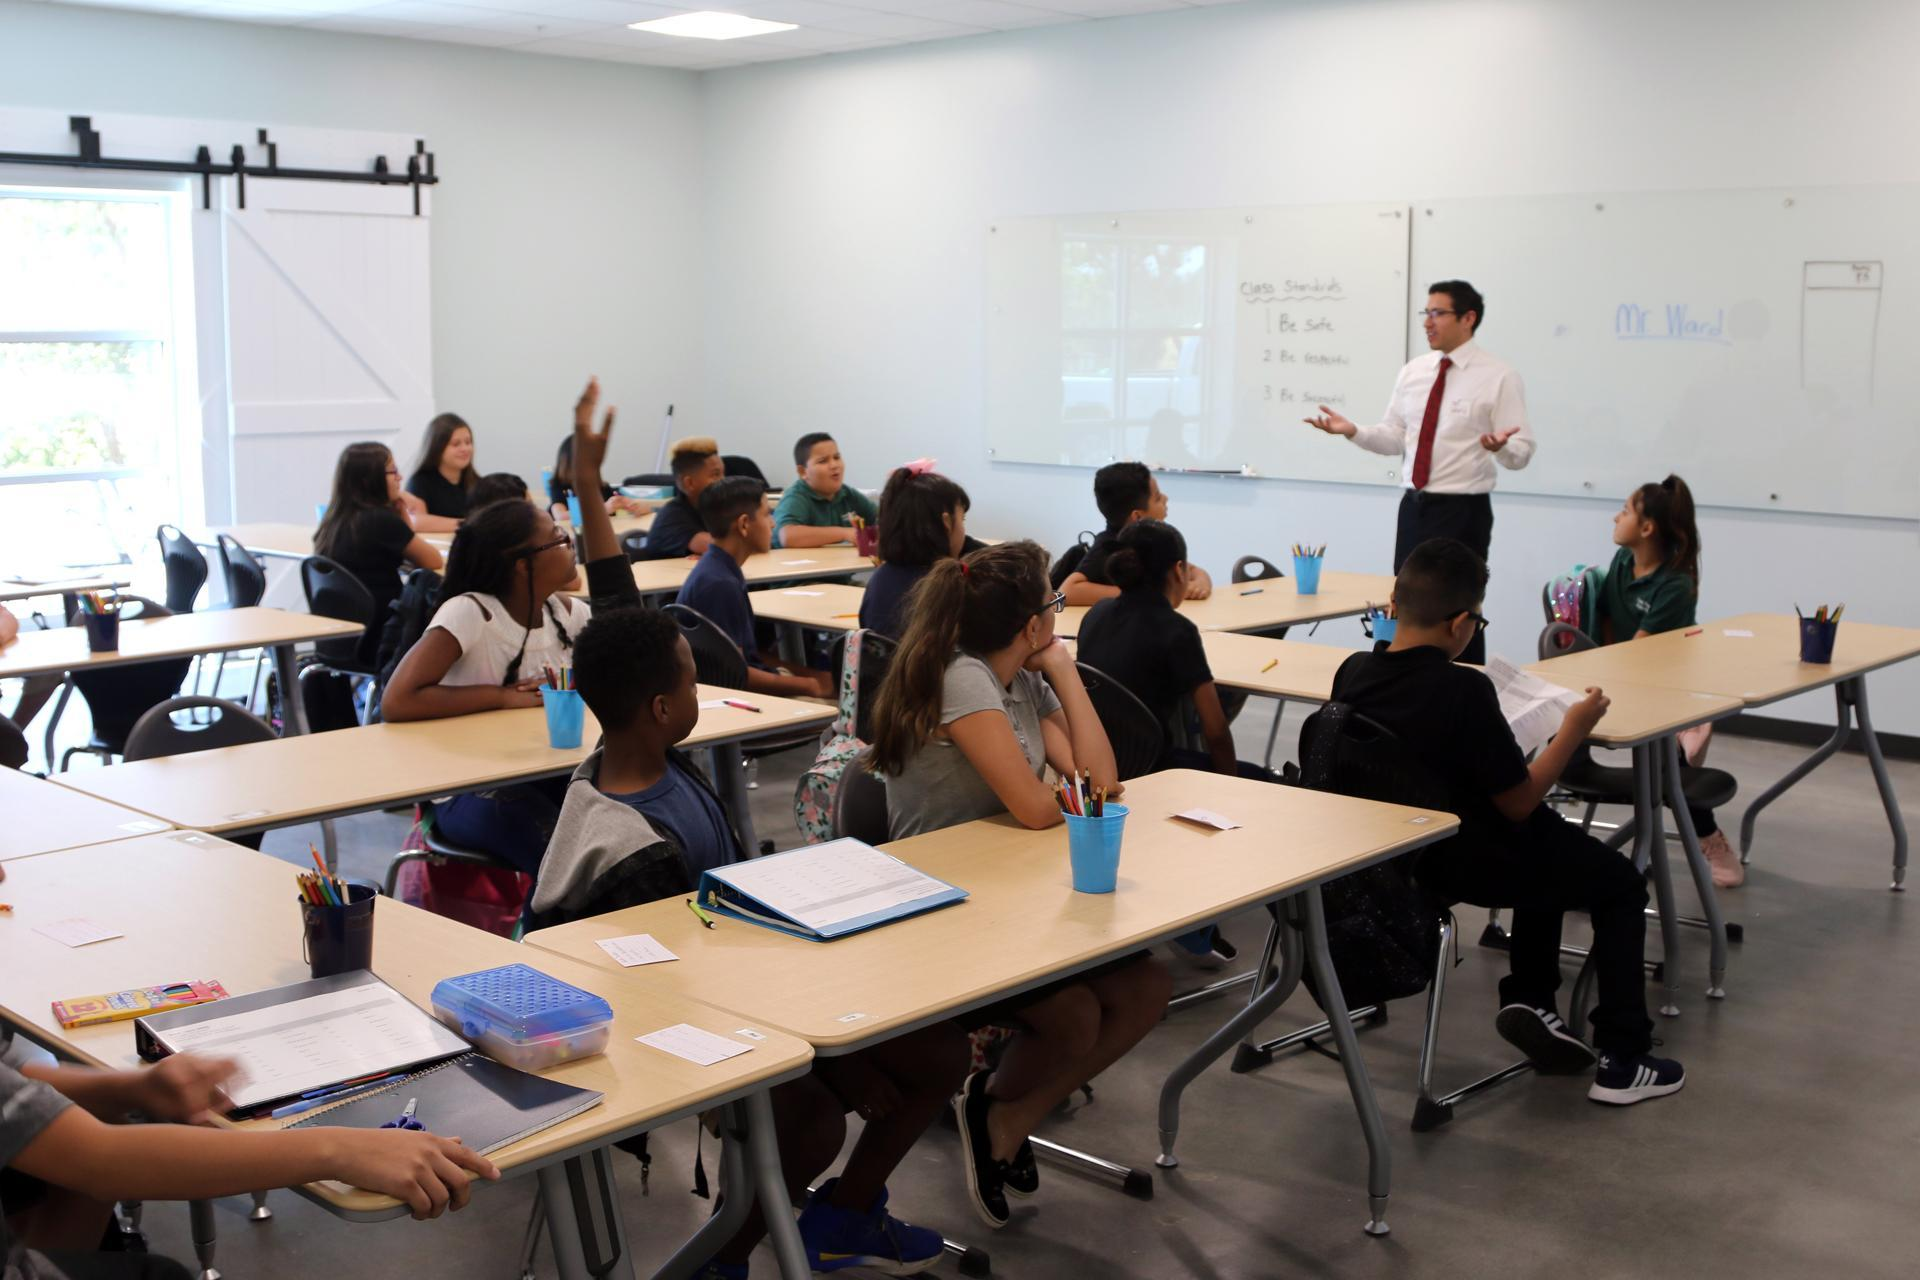 Classroom discussion with teacher and students